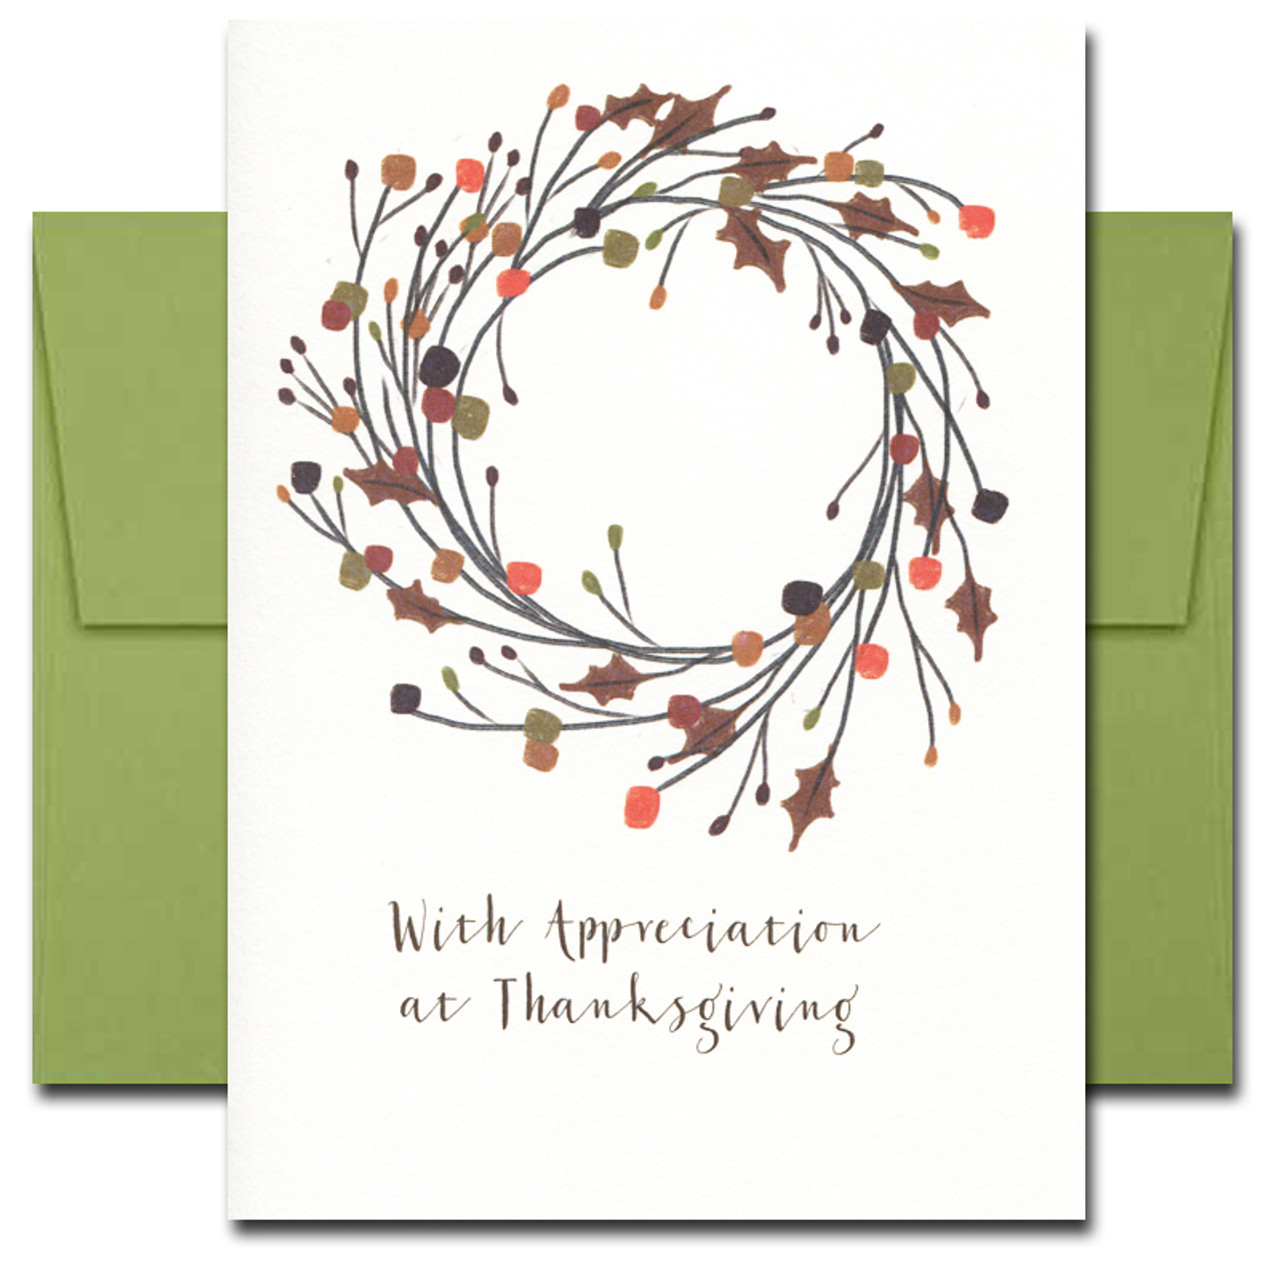 Thank You Cards: Thanksgiving Wreath features a hand-drawn wreath and the words With Appreciation at Thanksgiving